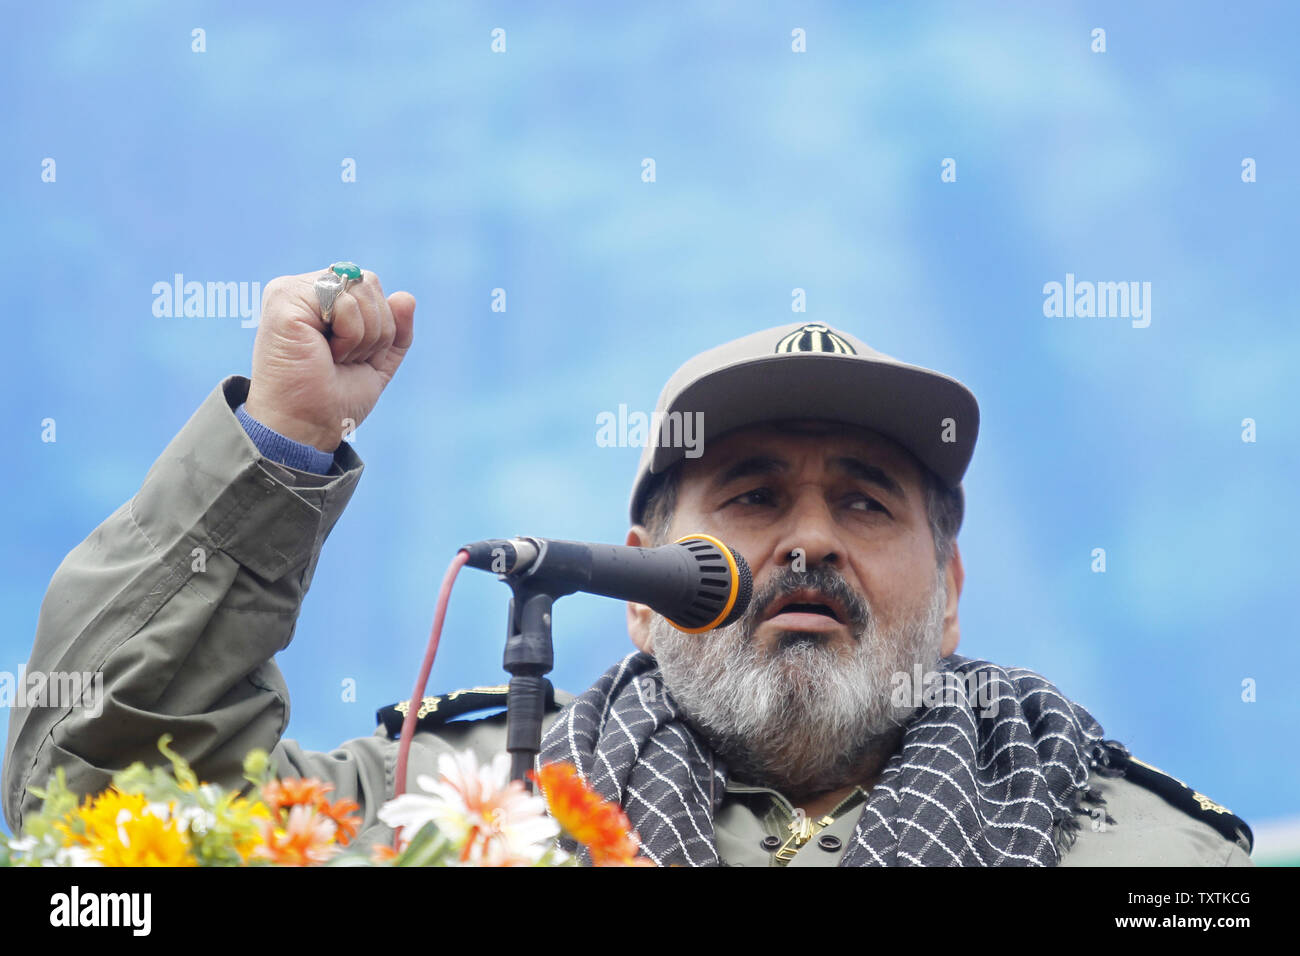 Chairman of the Joint Chiefs of Staff of Iran's Armed Forces Major General Hassan Firouzabadi speaks during a rally marking Basij week in front of the former U.S. Embassy in Tehran, Iran on November 25, 2011.     UPI/Maryam Rahmanian - Stock Image